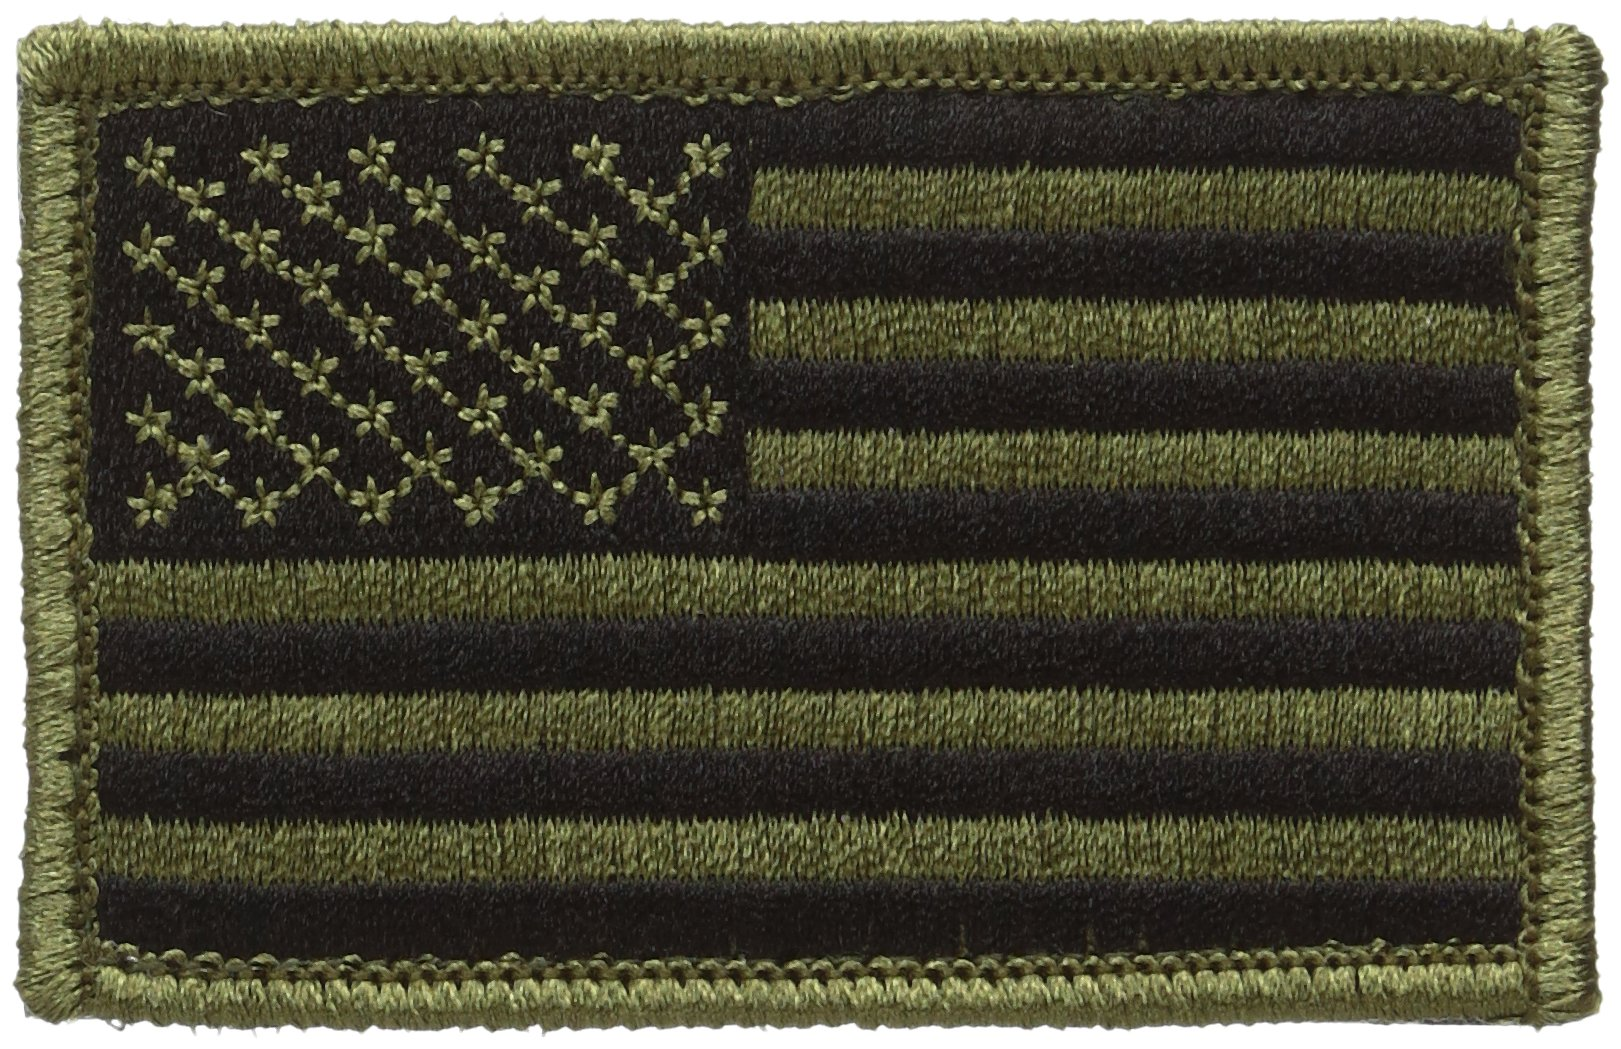 BLACKHAWK! American Flag Patch Subdued Olive Drab by BLACKHAWK!